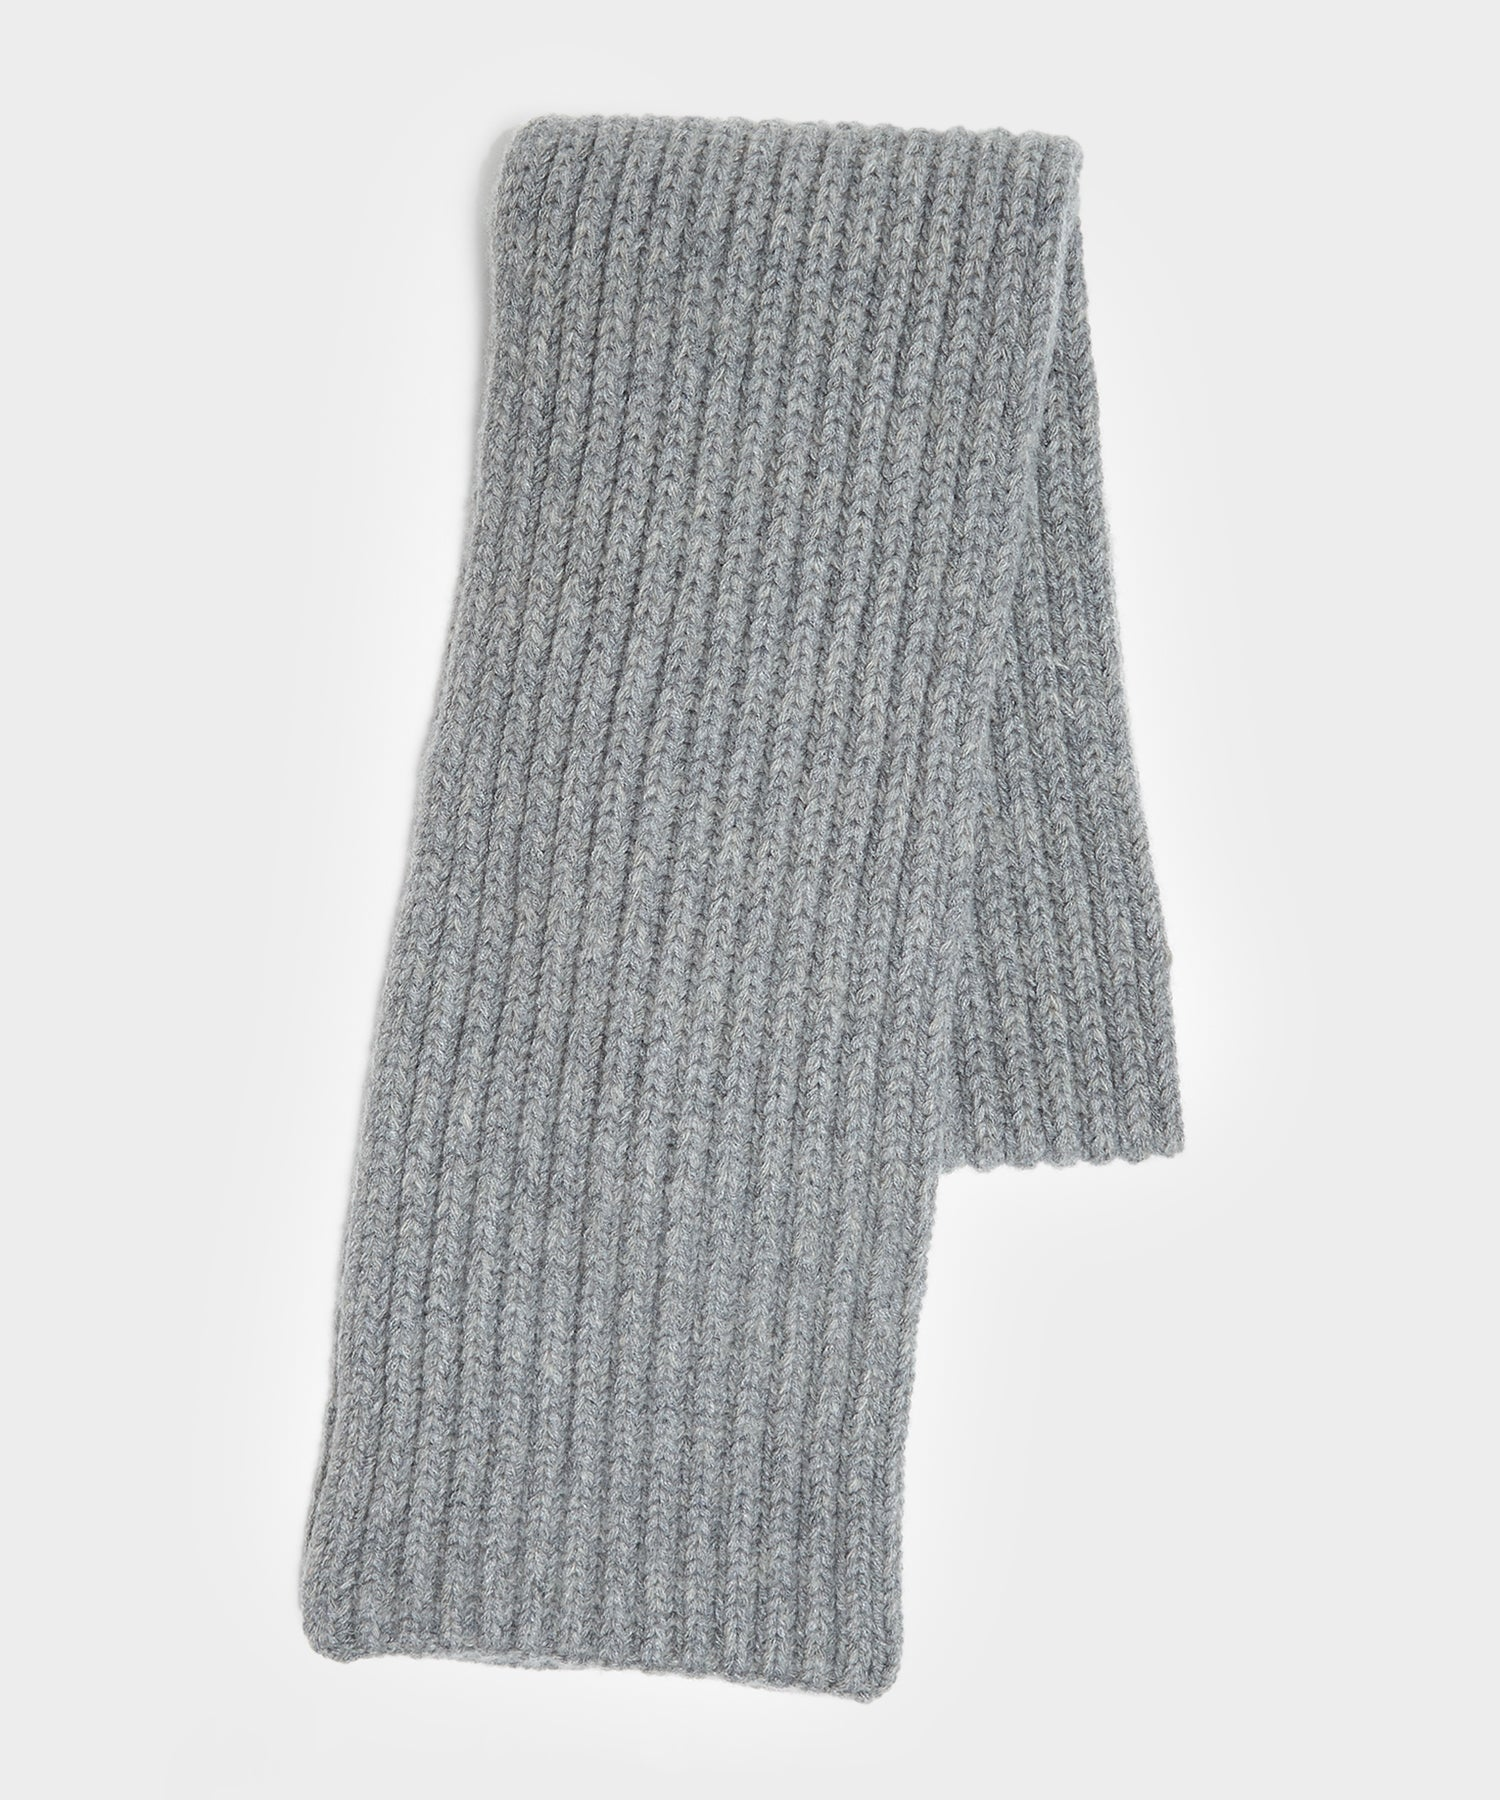 Corgi Wool/Cashmere Ribbed Scarf in Flannel Grey